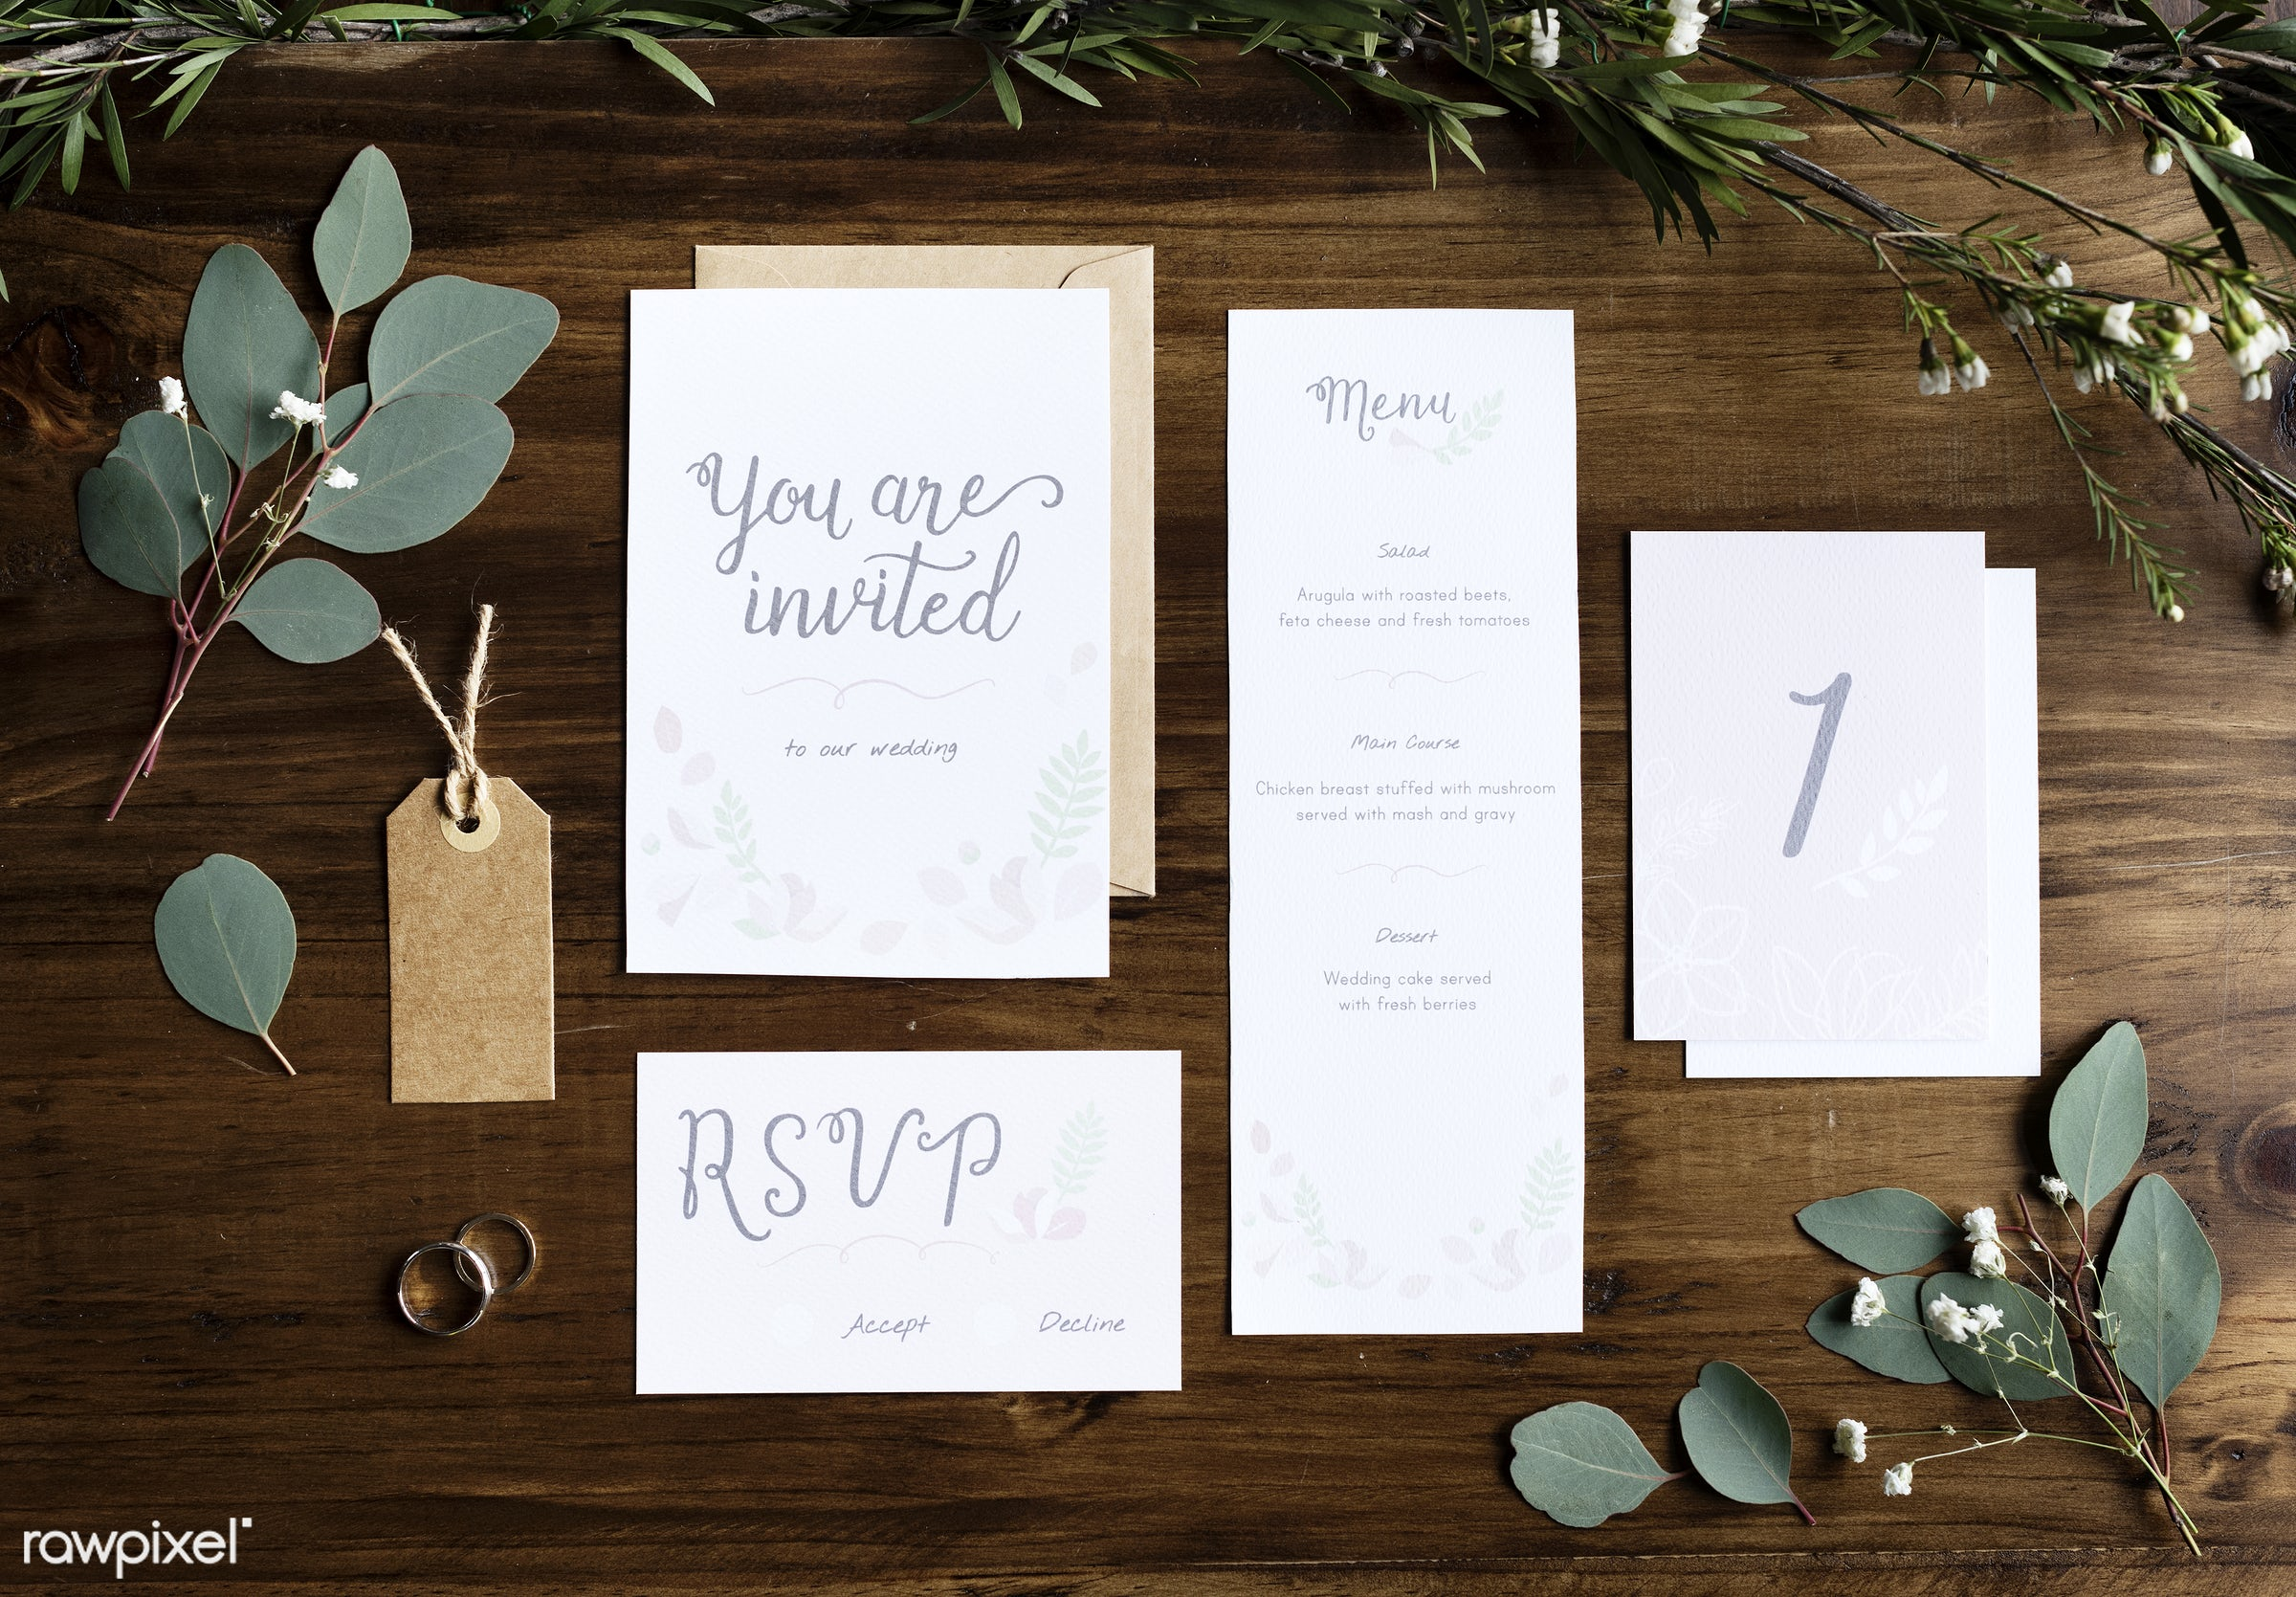 Wedding Invitation Cards Papers Laying on Table Decorate With Leaves - mockup, wedding, menu, recipe, marble, white, plant,...